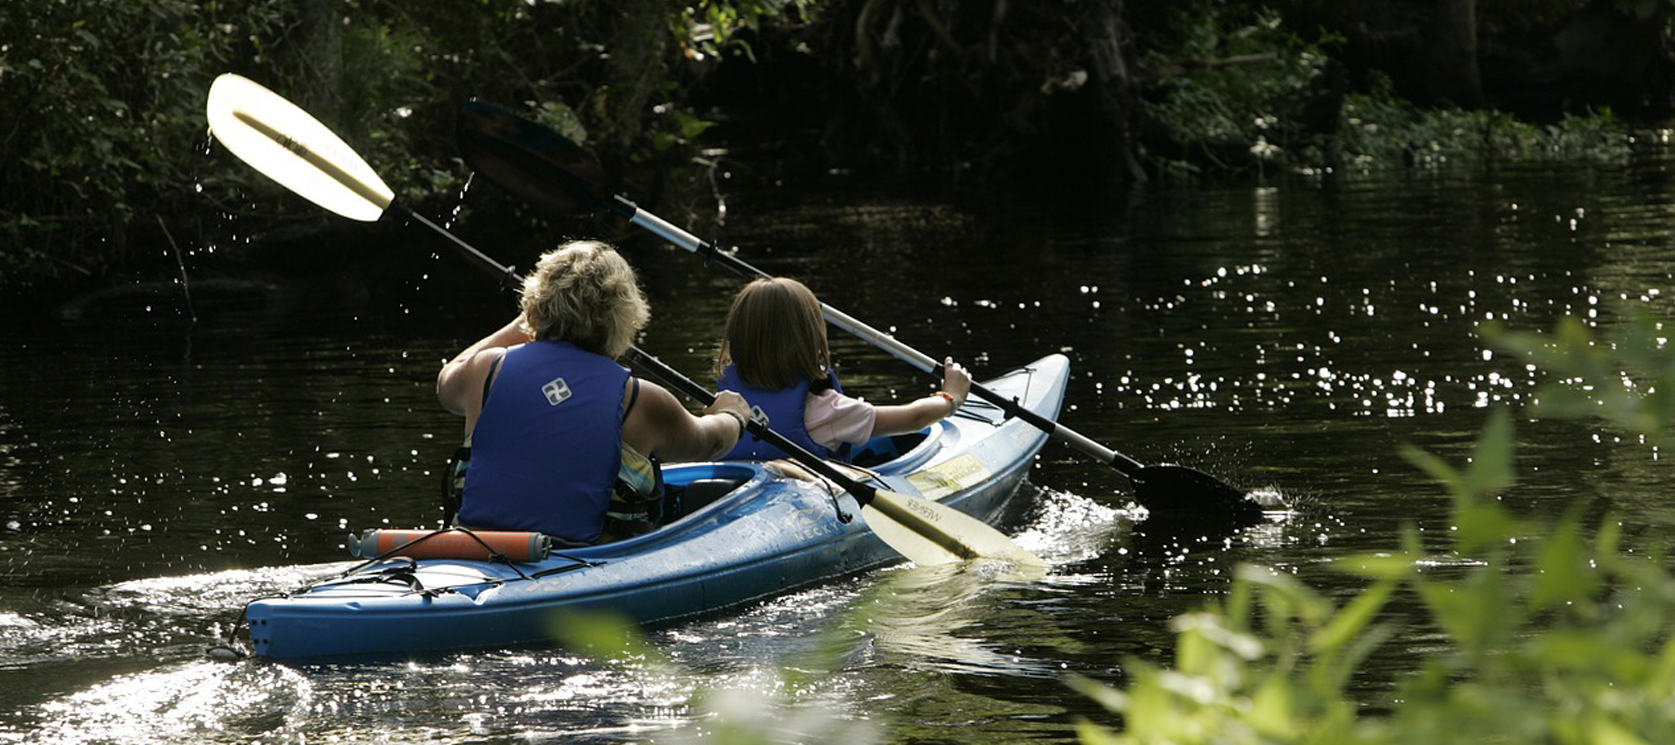 5 Best Places to Kayak